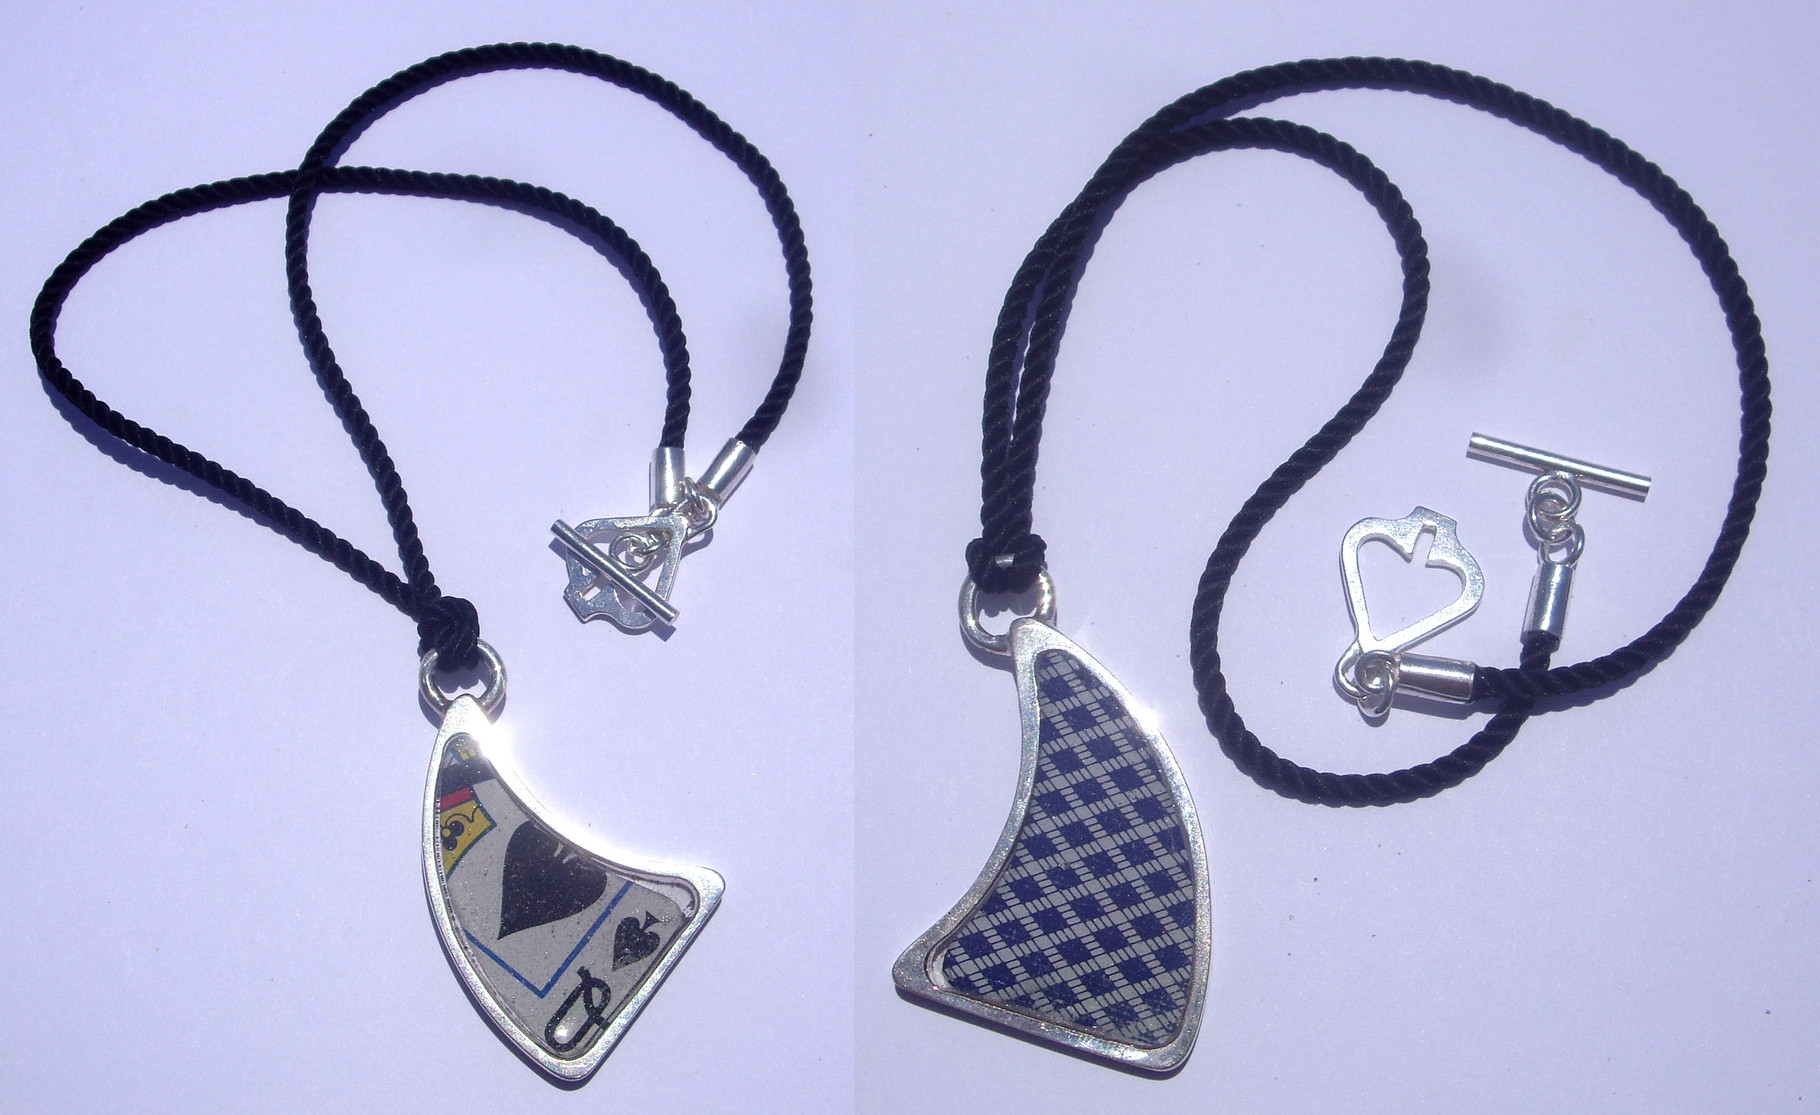 Wear you necklace to show off your card, or flip it over to hide it!